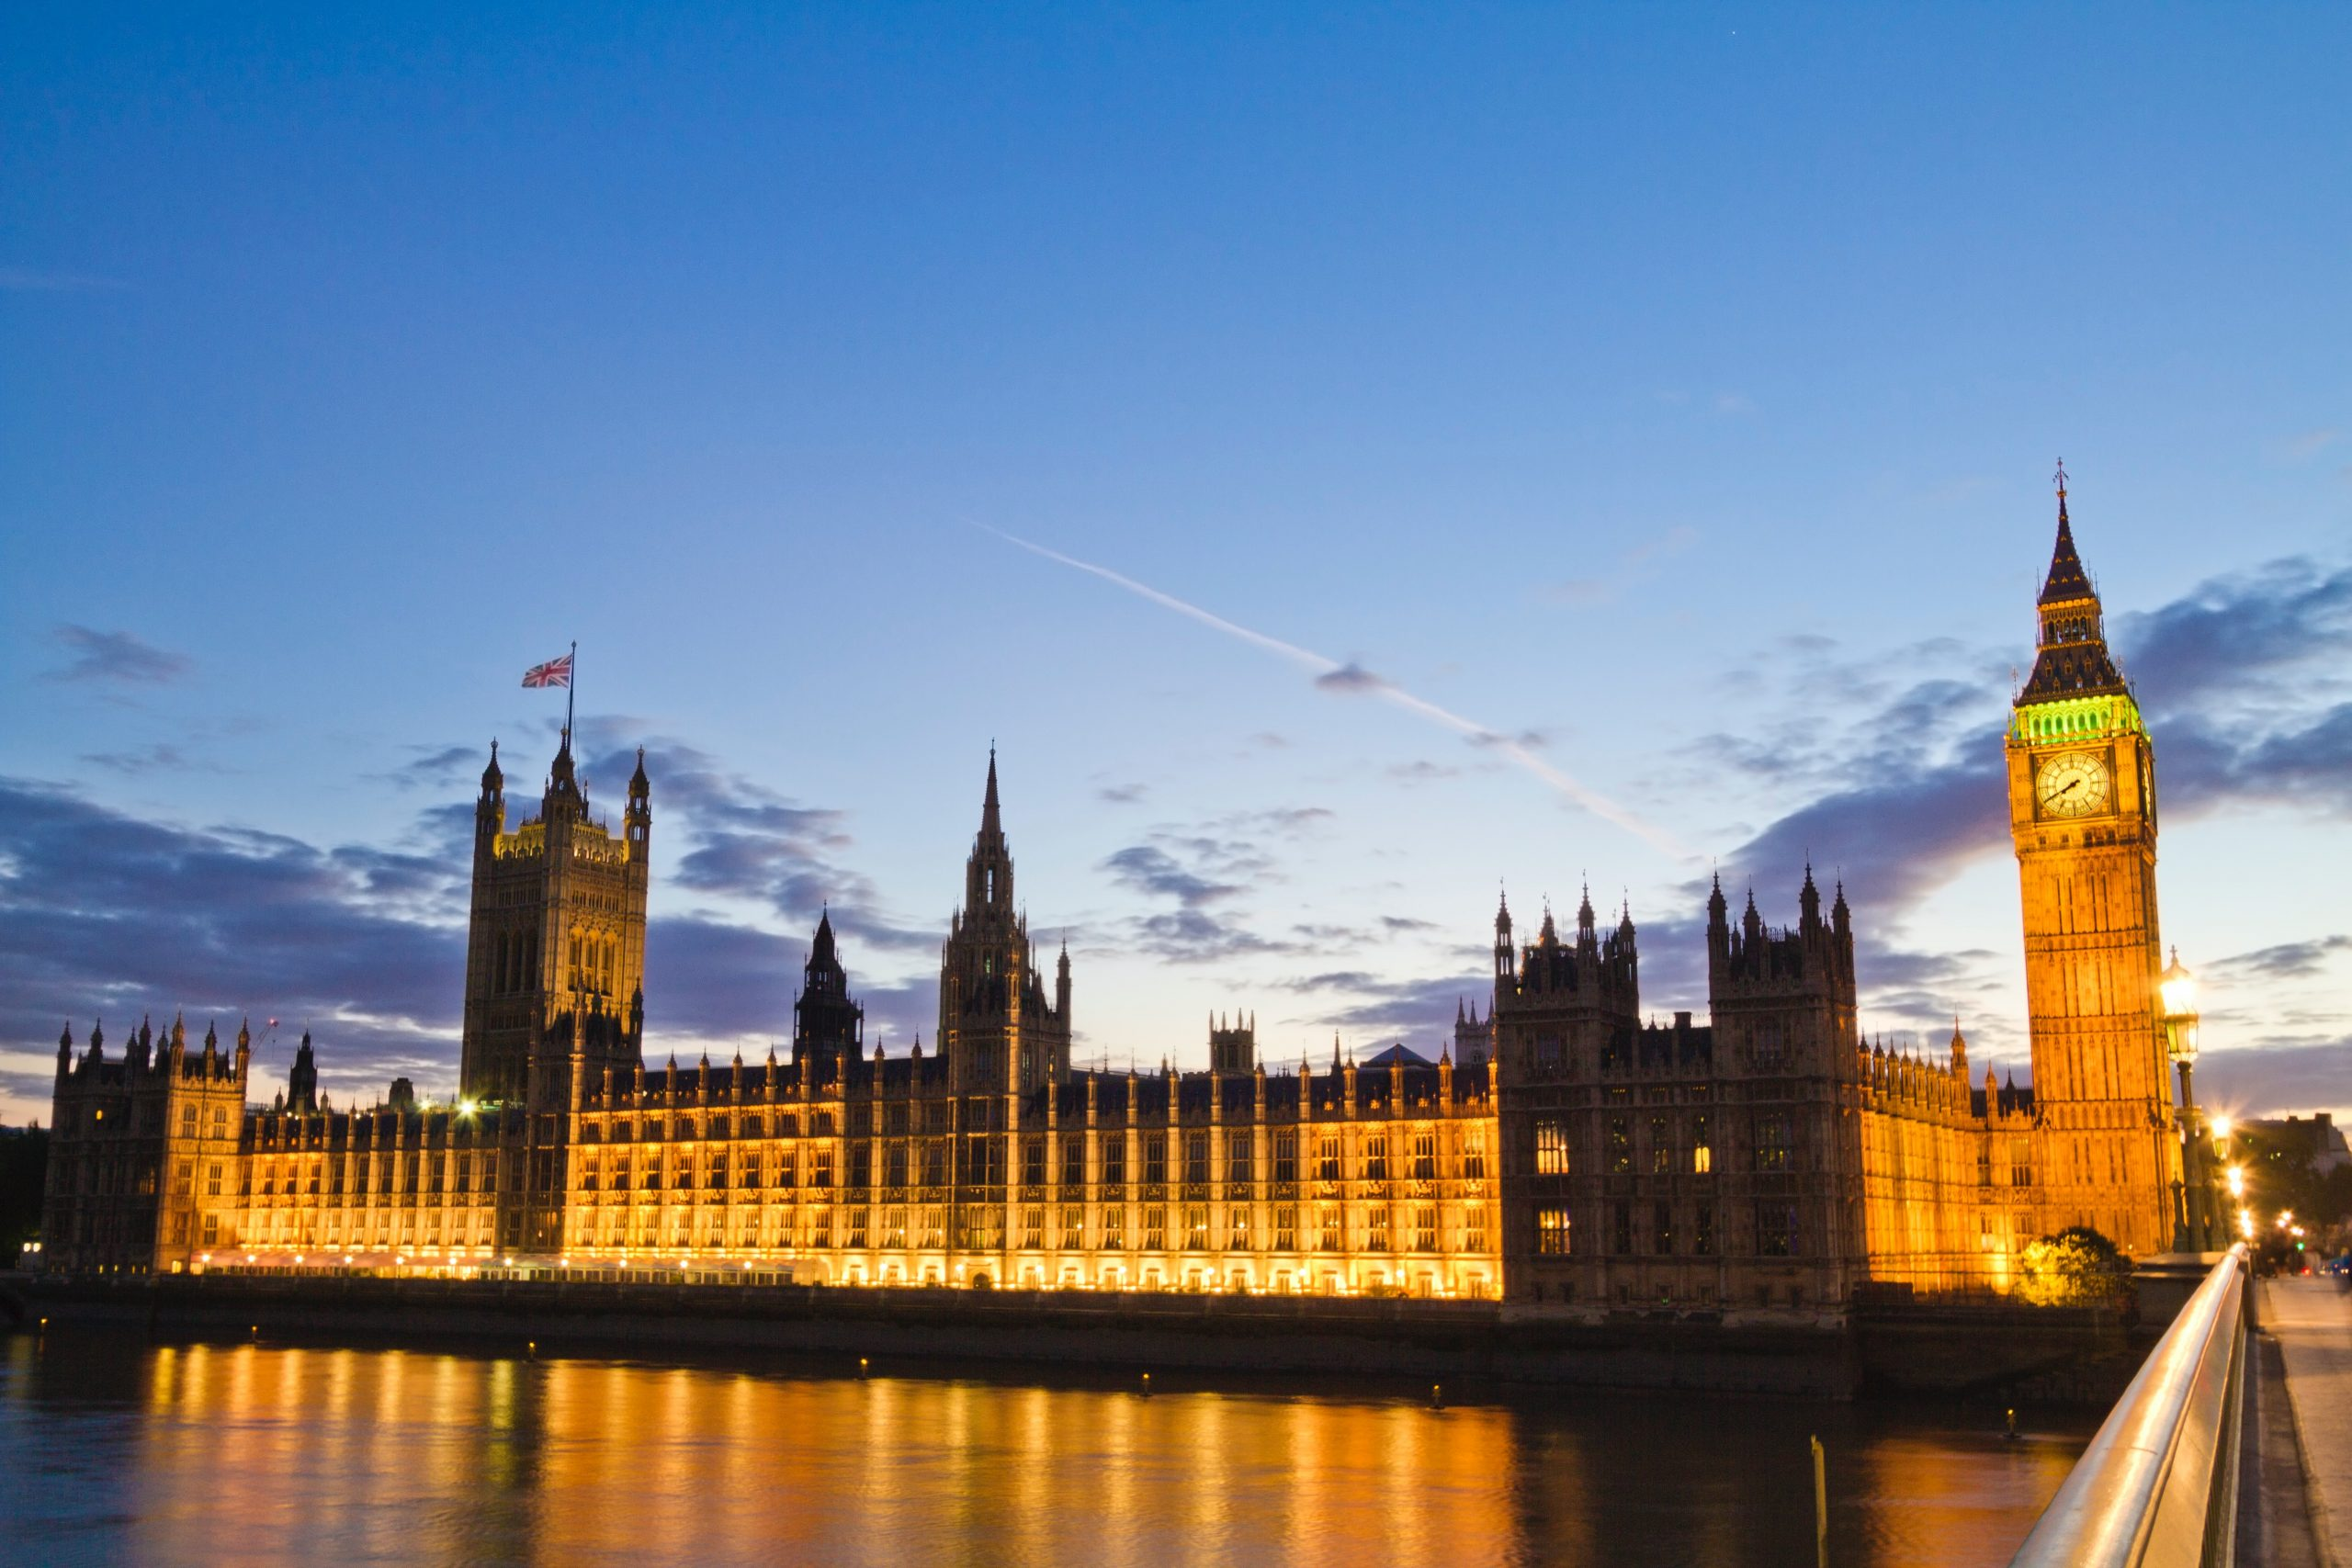 The House of Commons at sunset